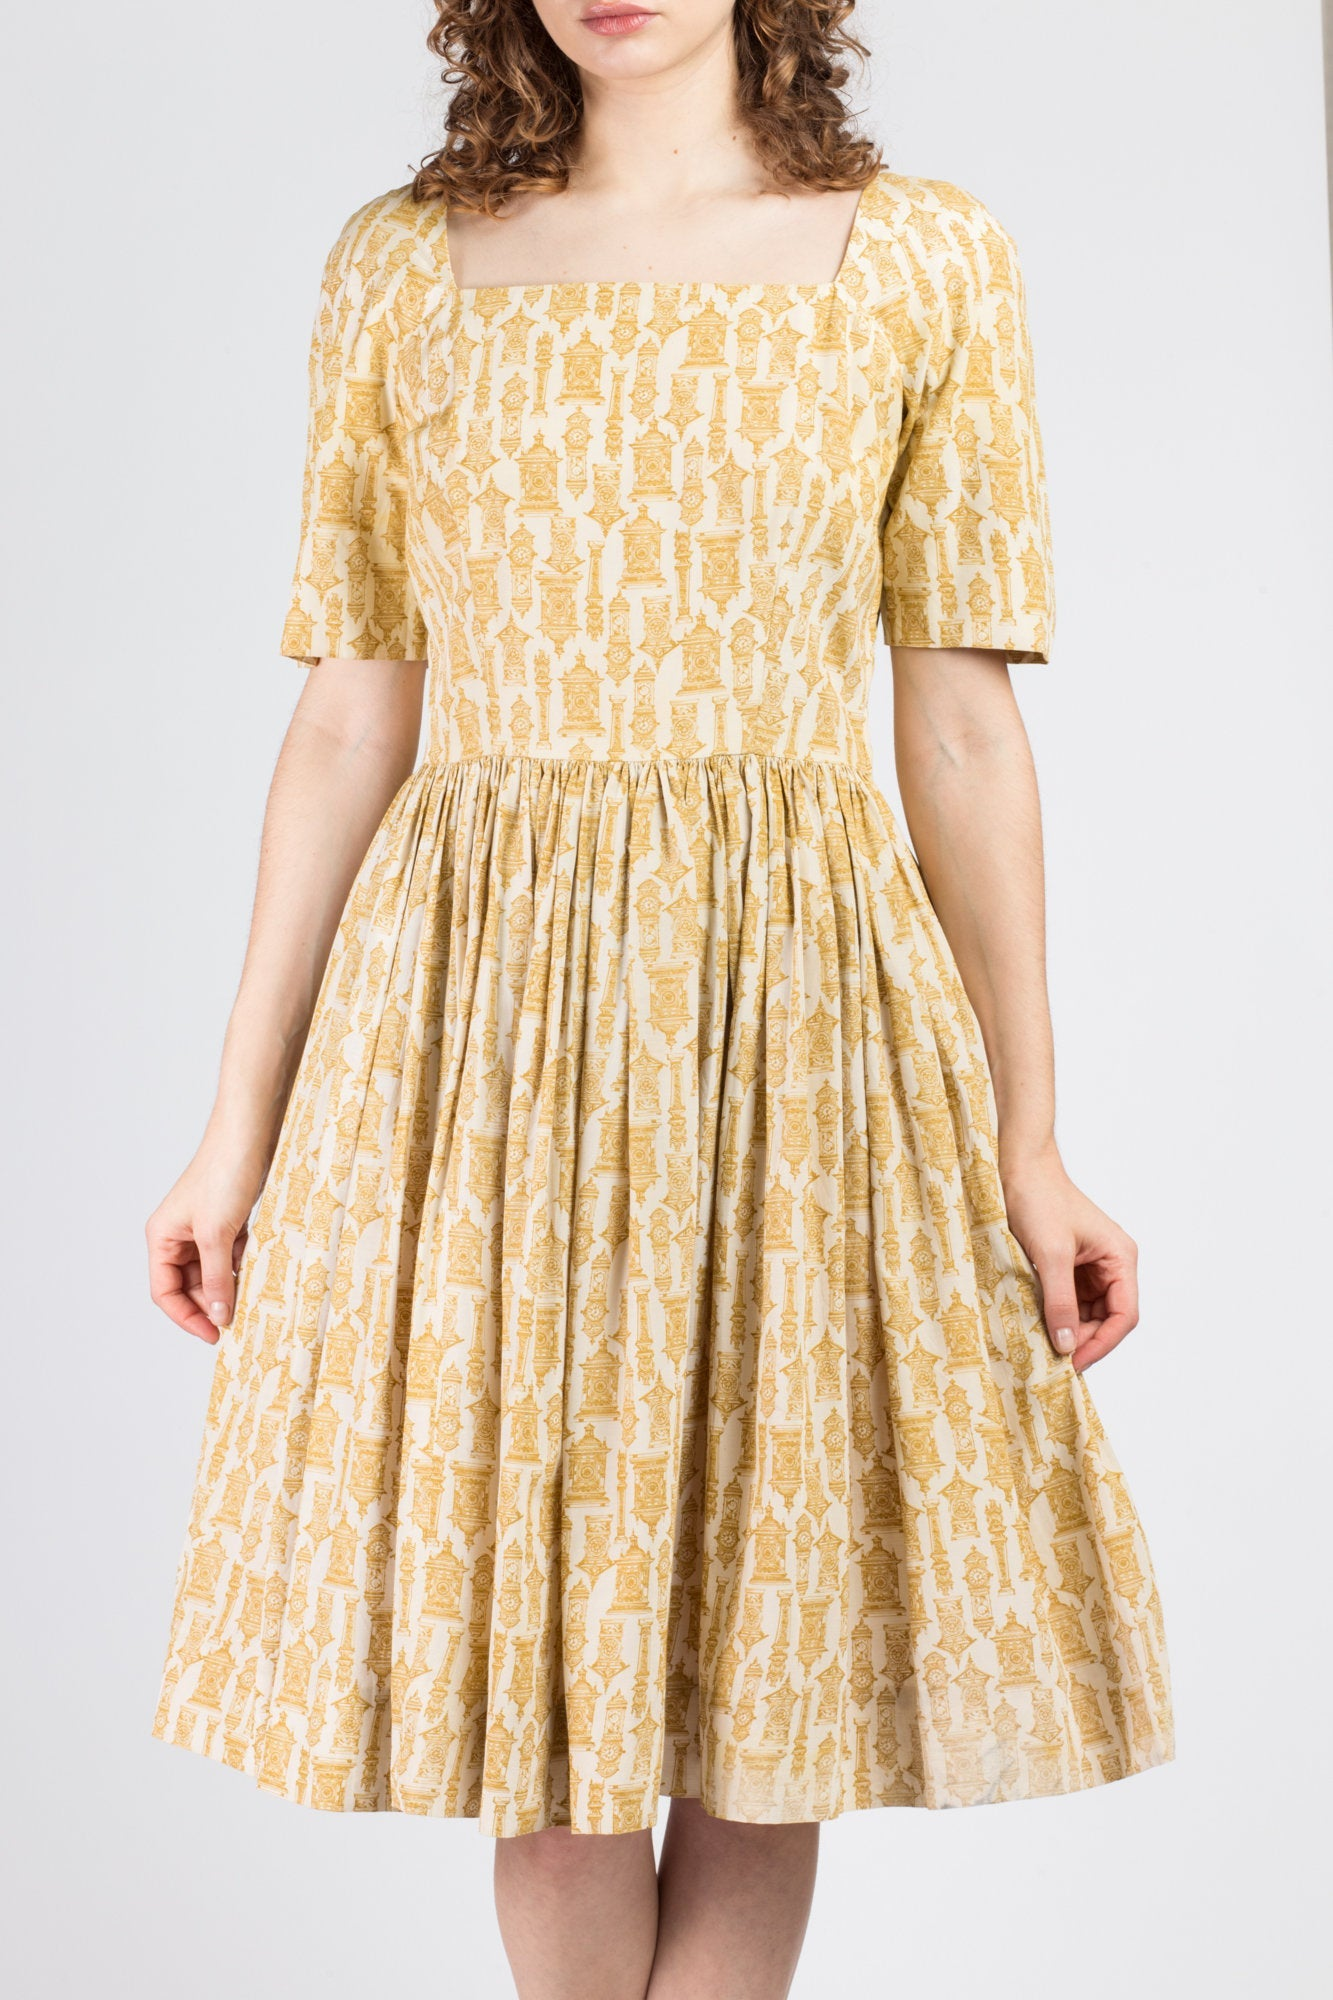 40s 50s Clock Print Knee Length Dress - Medium